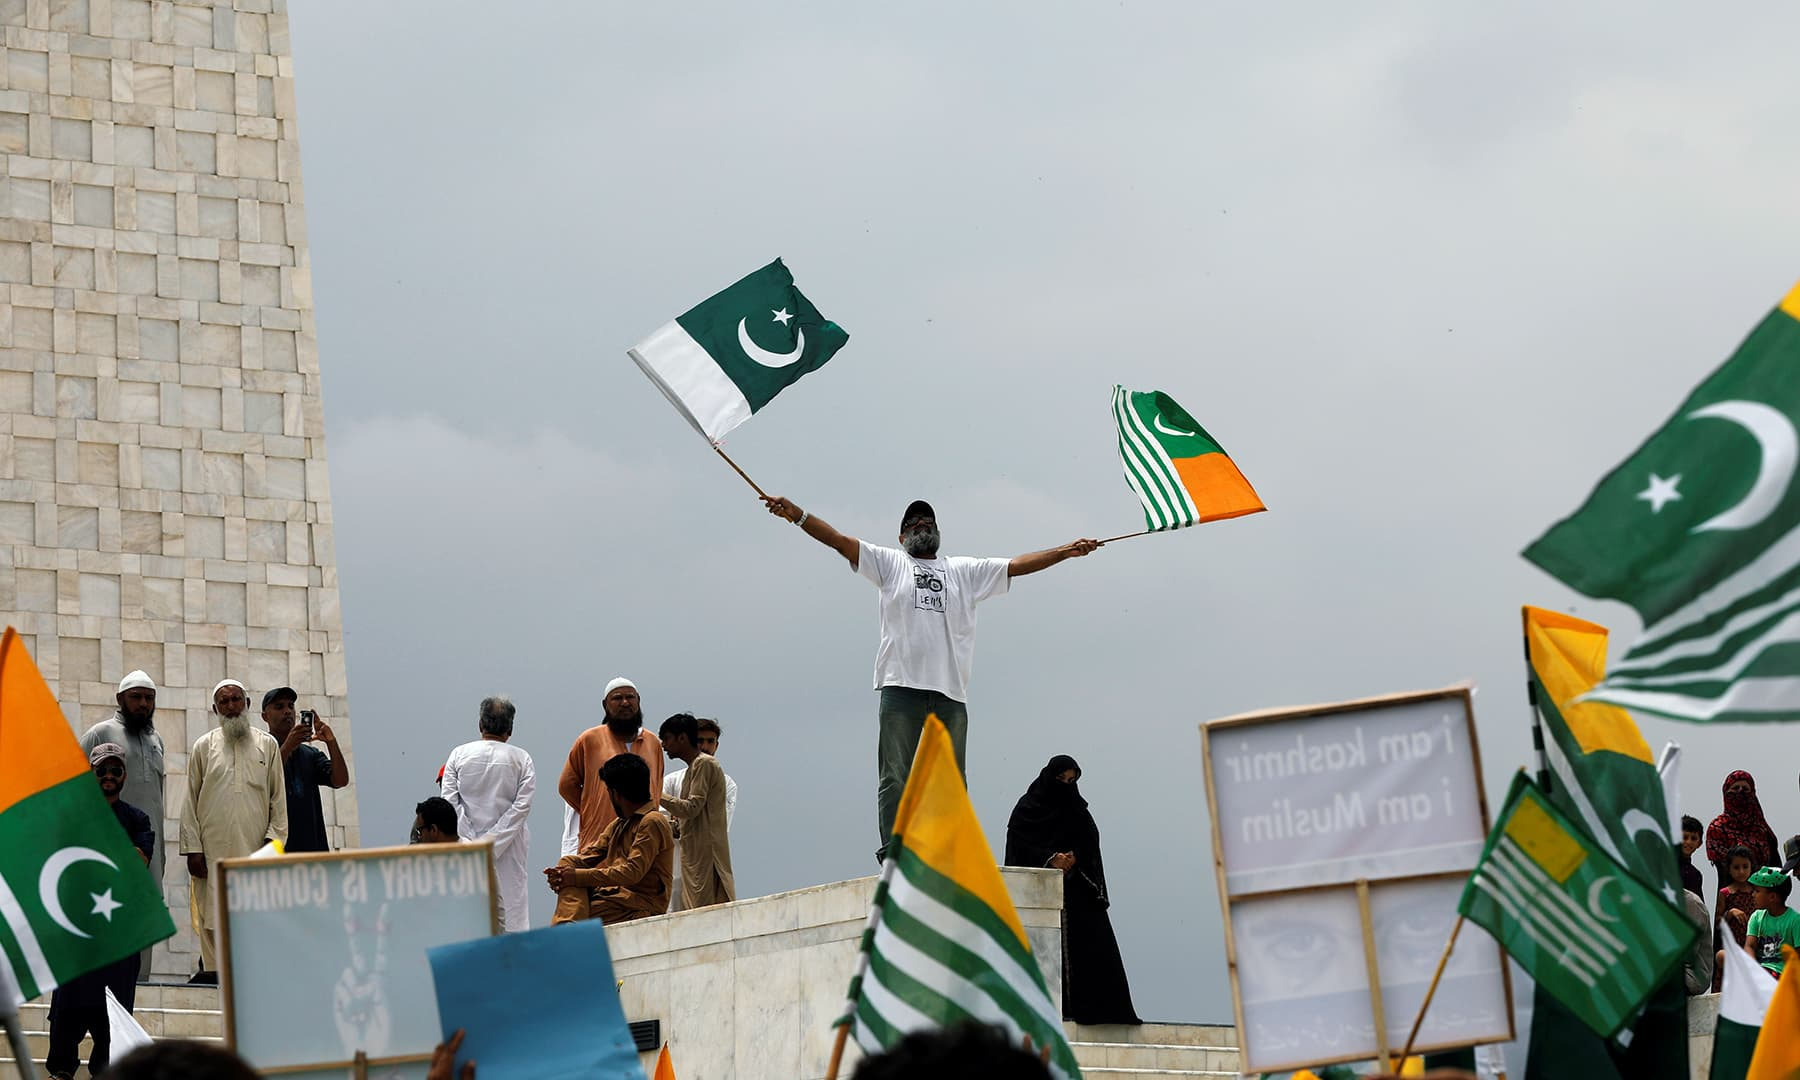 A man waves Pakistan's and Azad Kashmir's flags during a countrywide 'Kashmir Hour' to express solidarity with the people of occupied Kashmir at the Quaid's mausoleum in Karachi. — Reuters